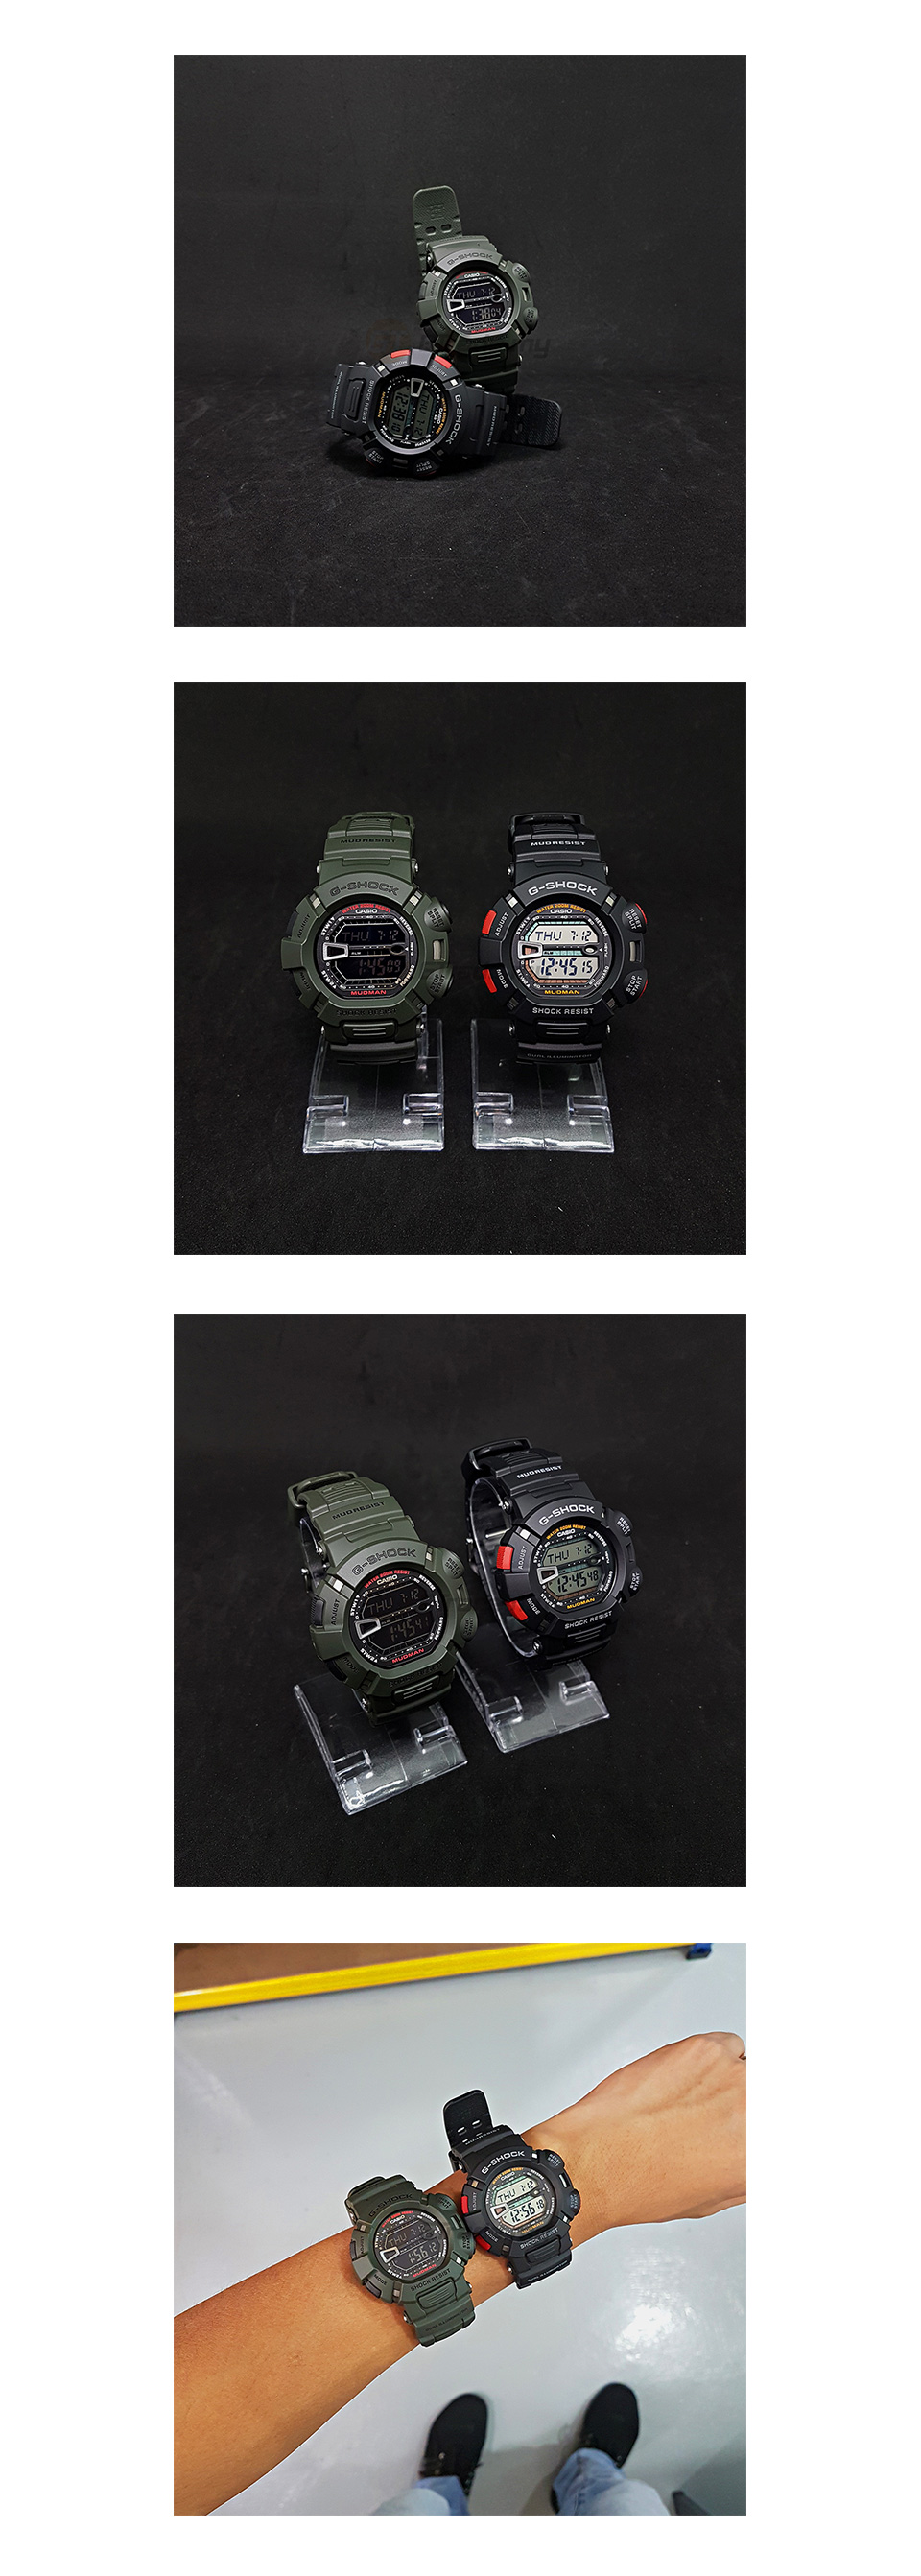 casio g shock user manual